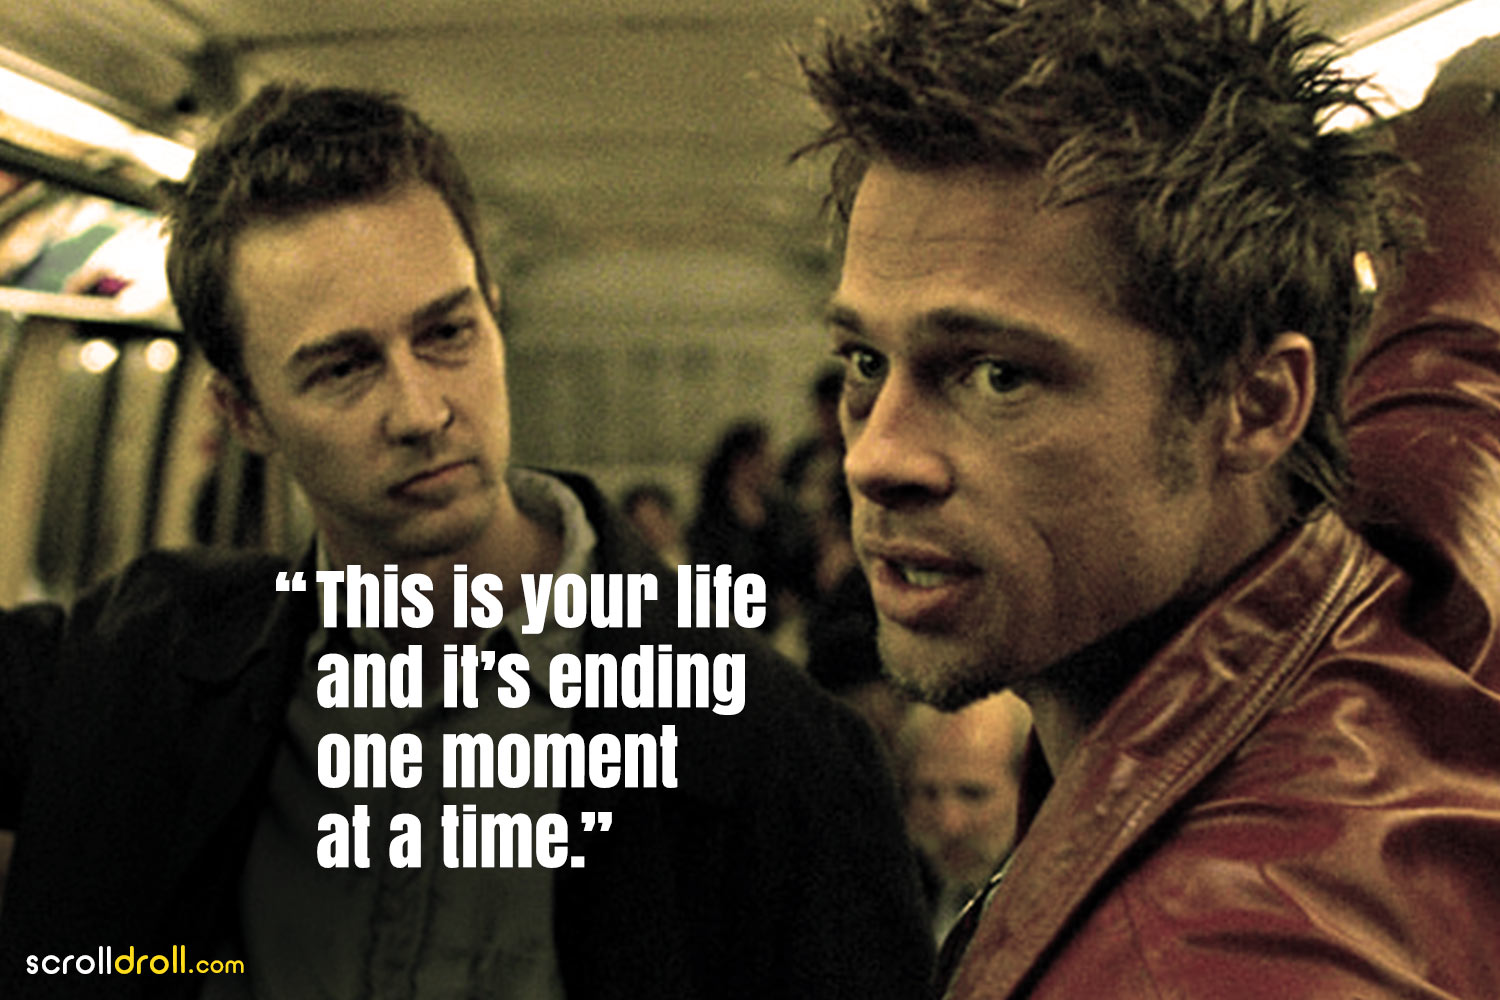 Fight Club Quotes- This is your life and its ending one moment at a time